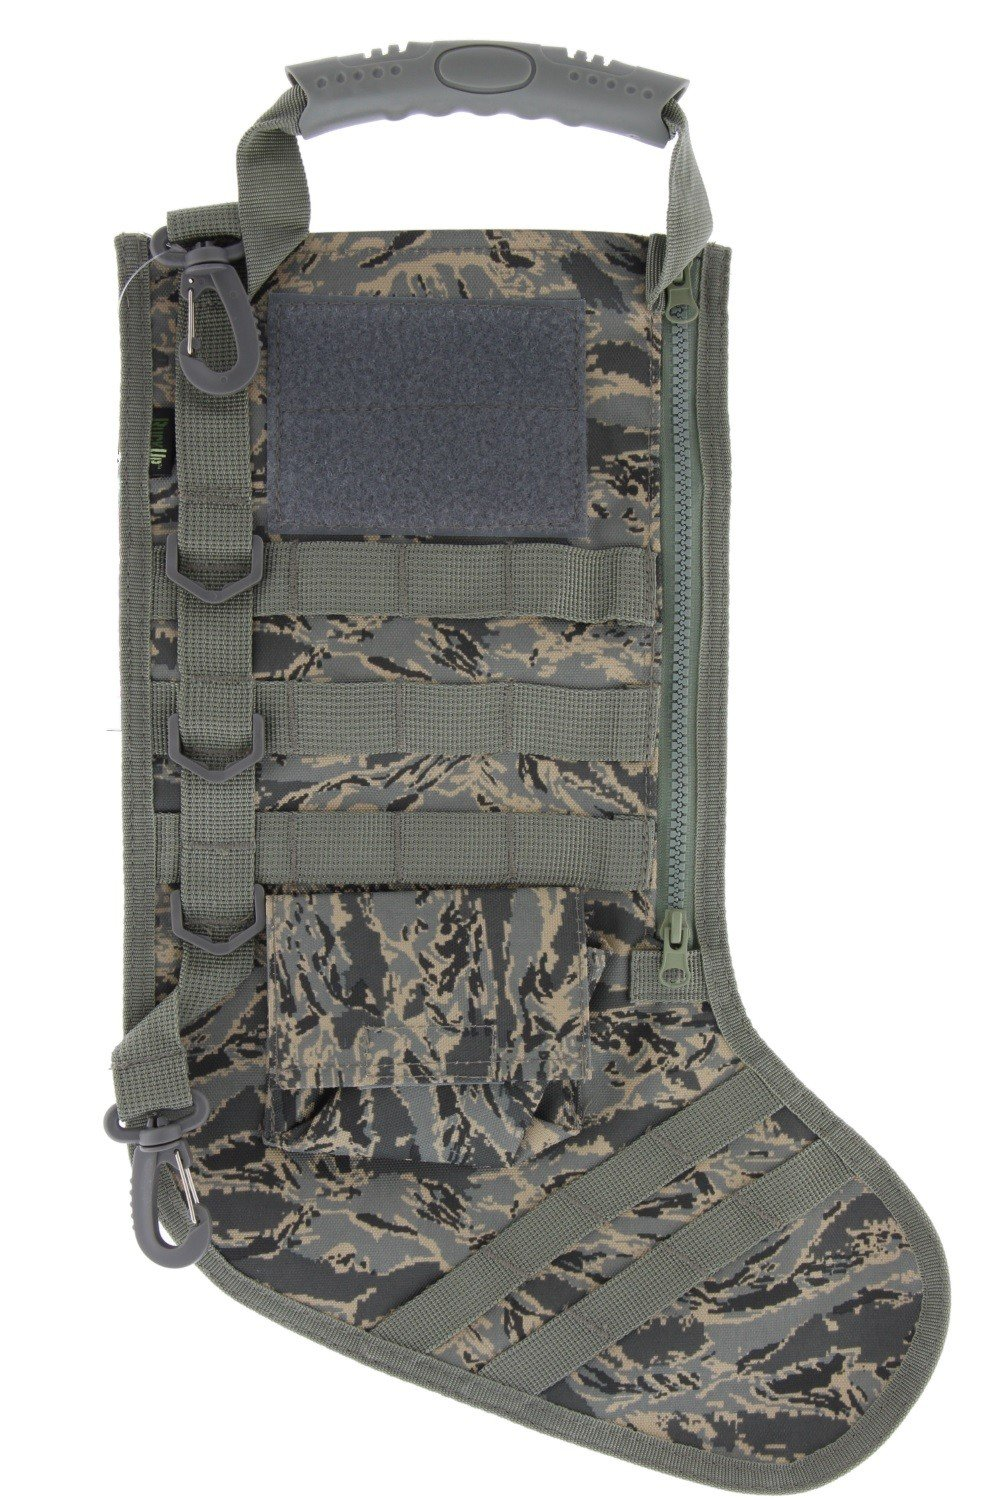 RUCKUP RUXMTSABU Tactical Christmas Stocking, Full, ABU Camo by RUCKUP